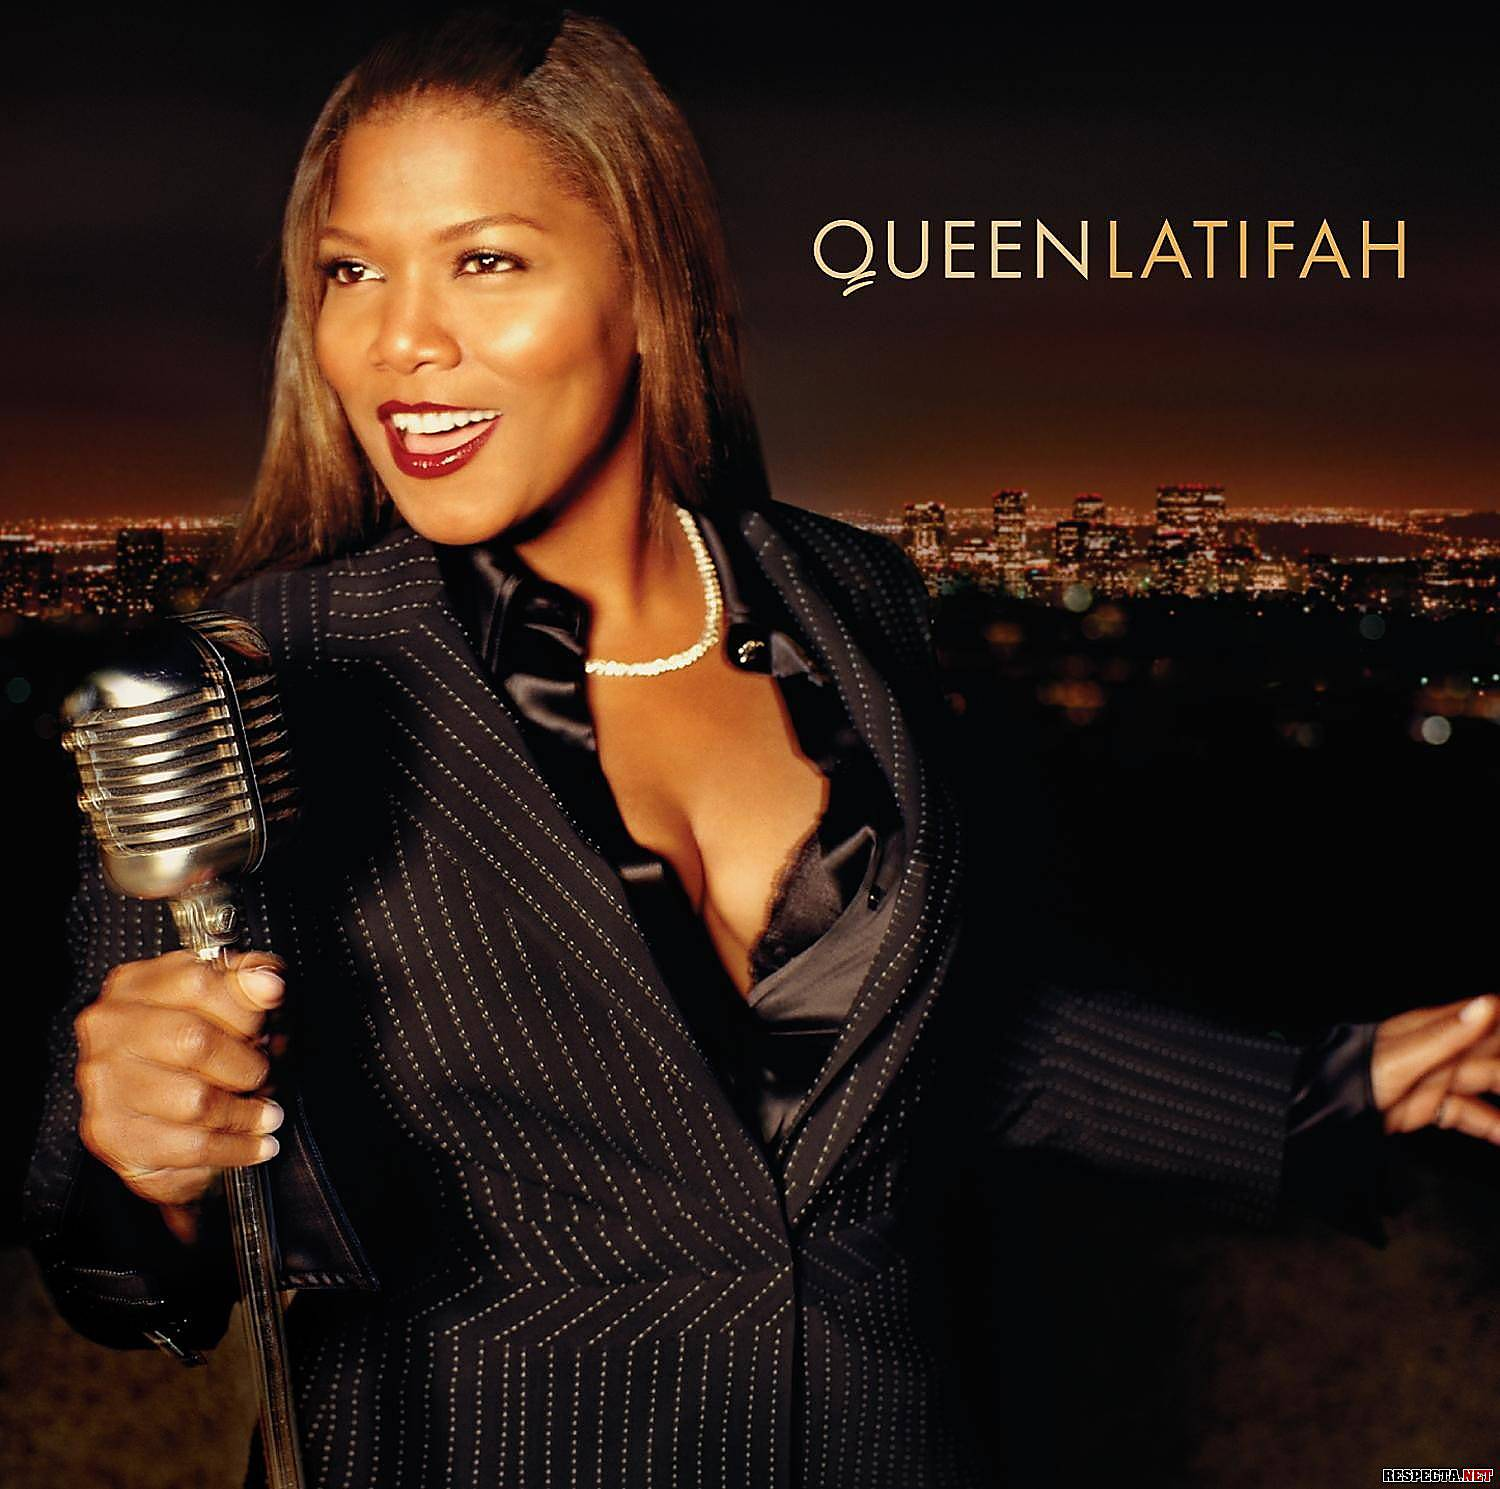 The Evolution of Queen Latifah - After showing off her surprisingly strong pipes in Chicago, Latifah followed through with a new LP, 2004's The Dana Owens Album, which found her switching lanes away from rap and belting out jazz standards. The boundary-breaking album was her most successful to date, selling more than 600,000 copies.(Photo: Flavor Unit)